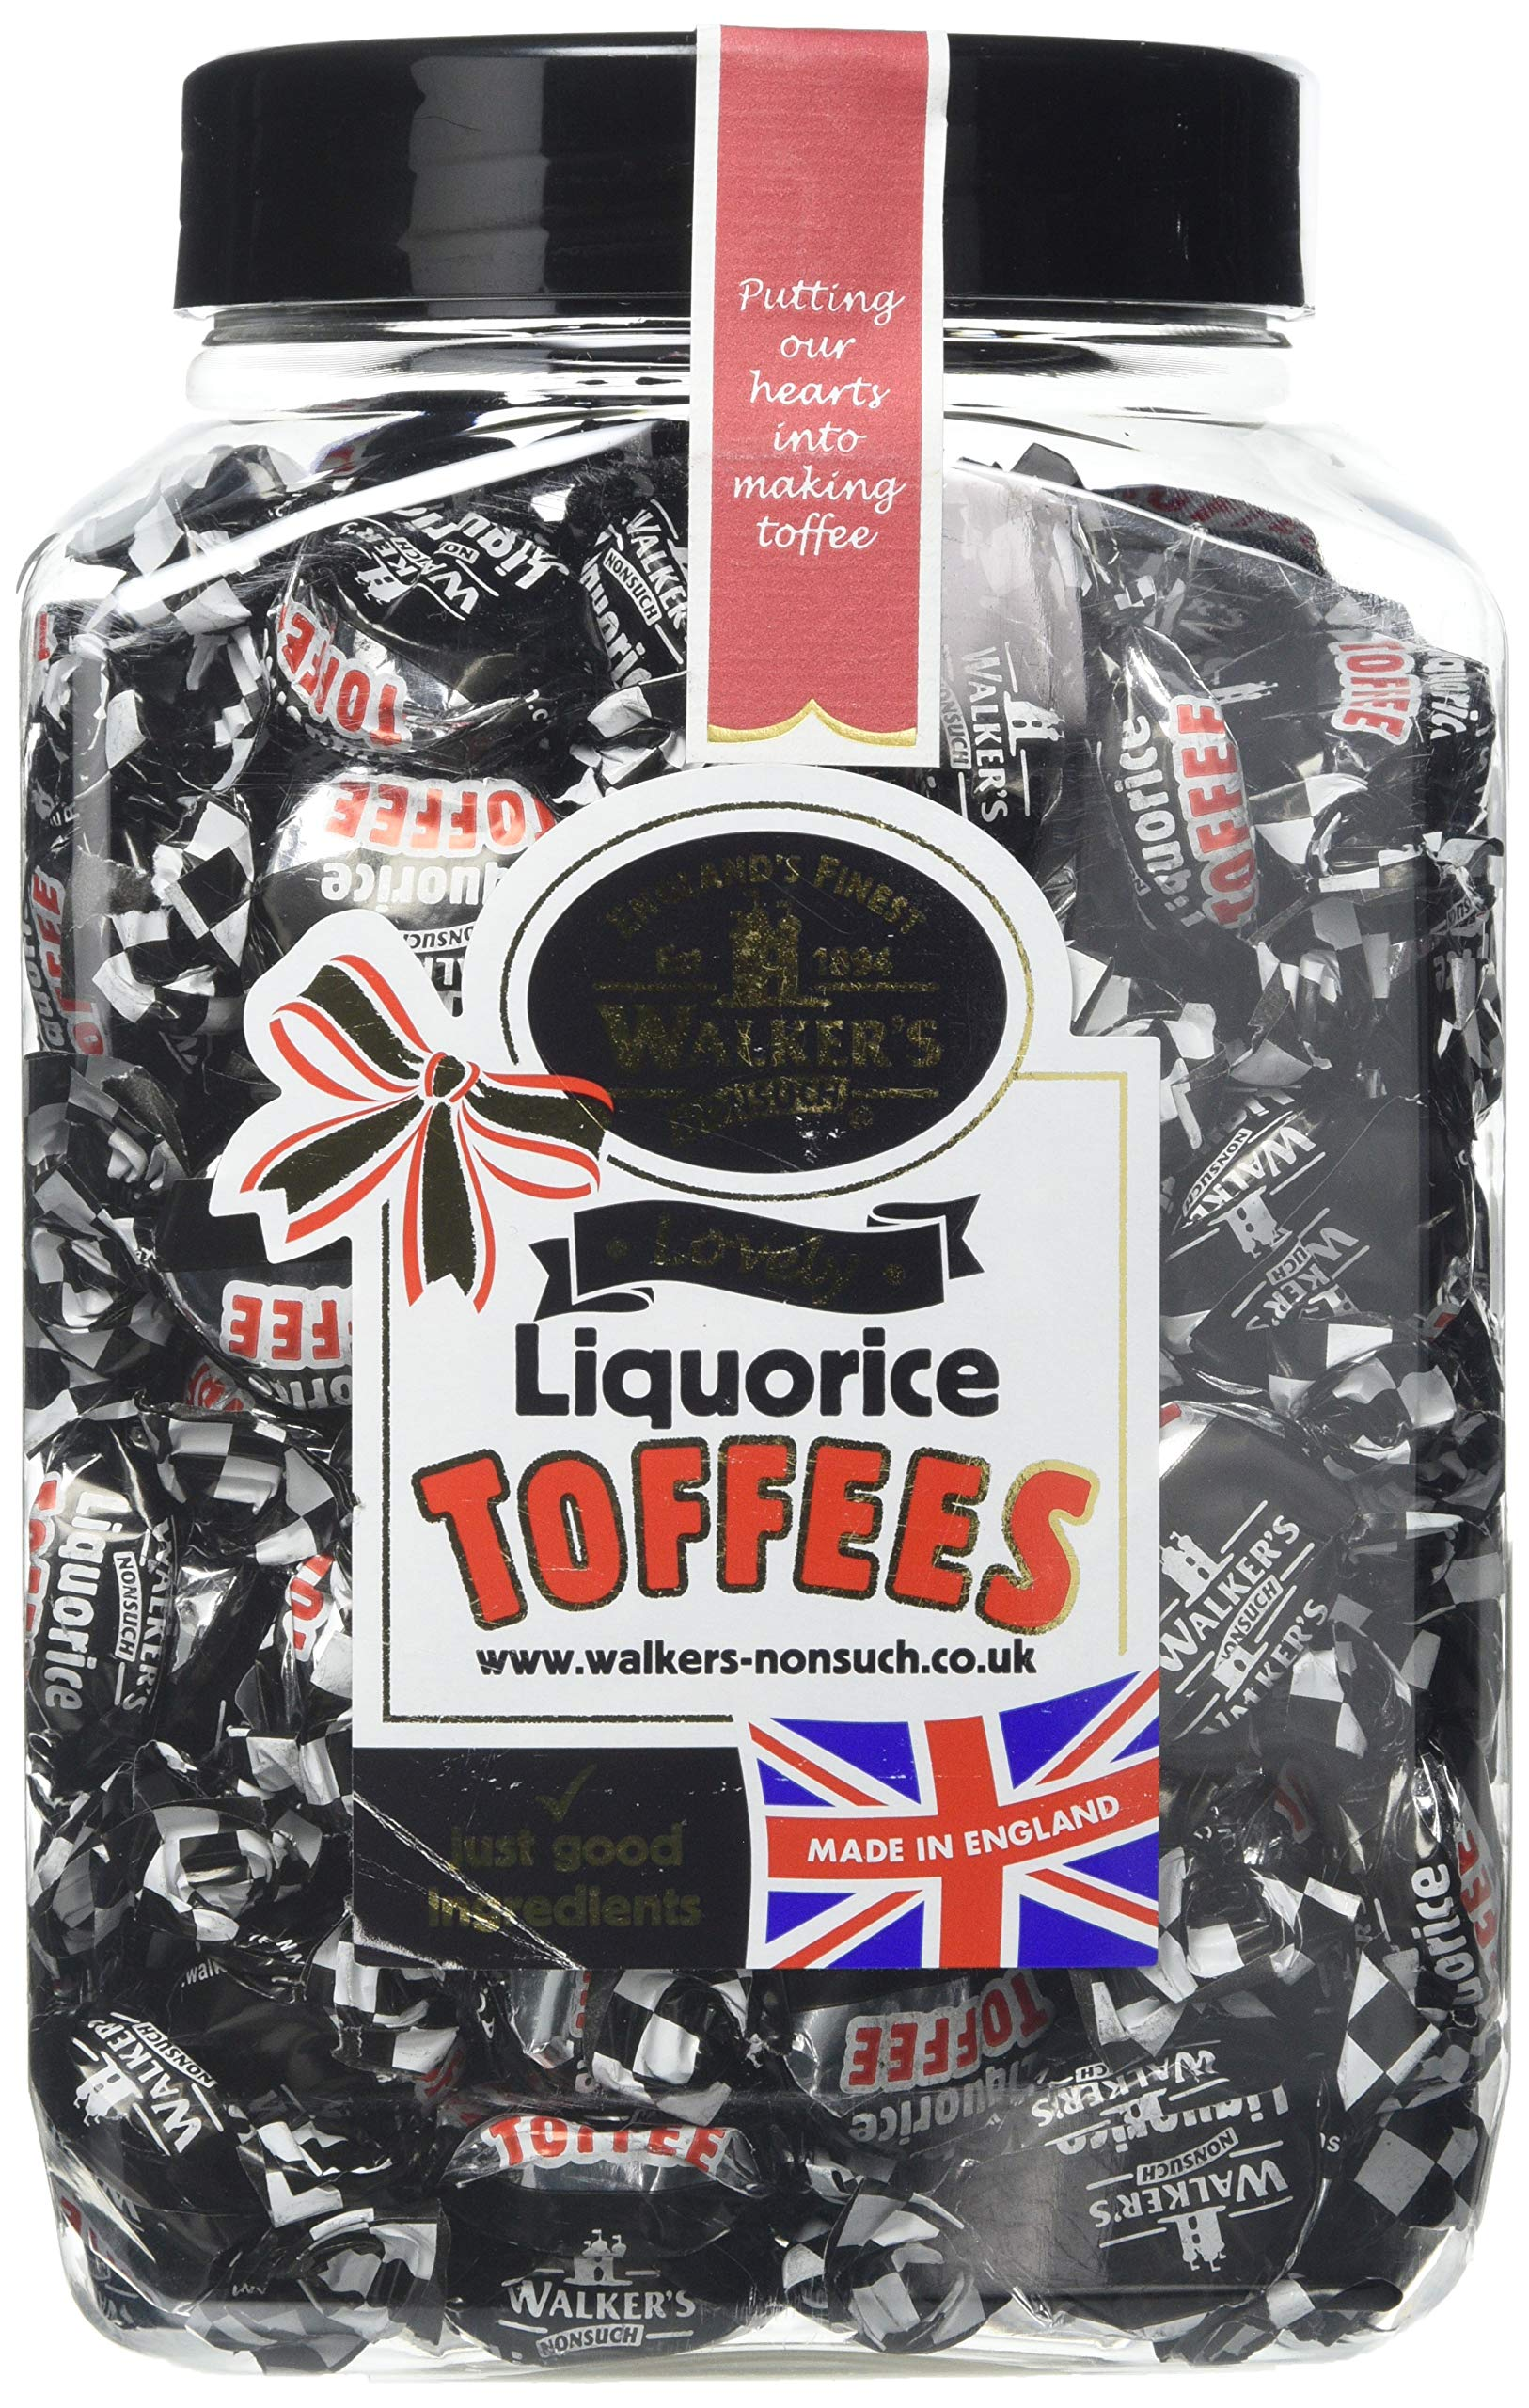 Walkers Liquorice Toffee 1.25kg Jar by Walkers Nonsuch Toffee Ltd